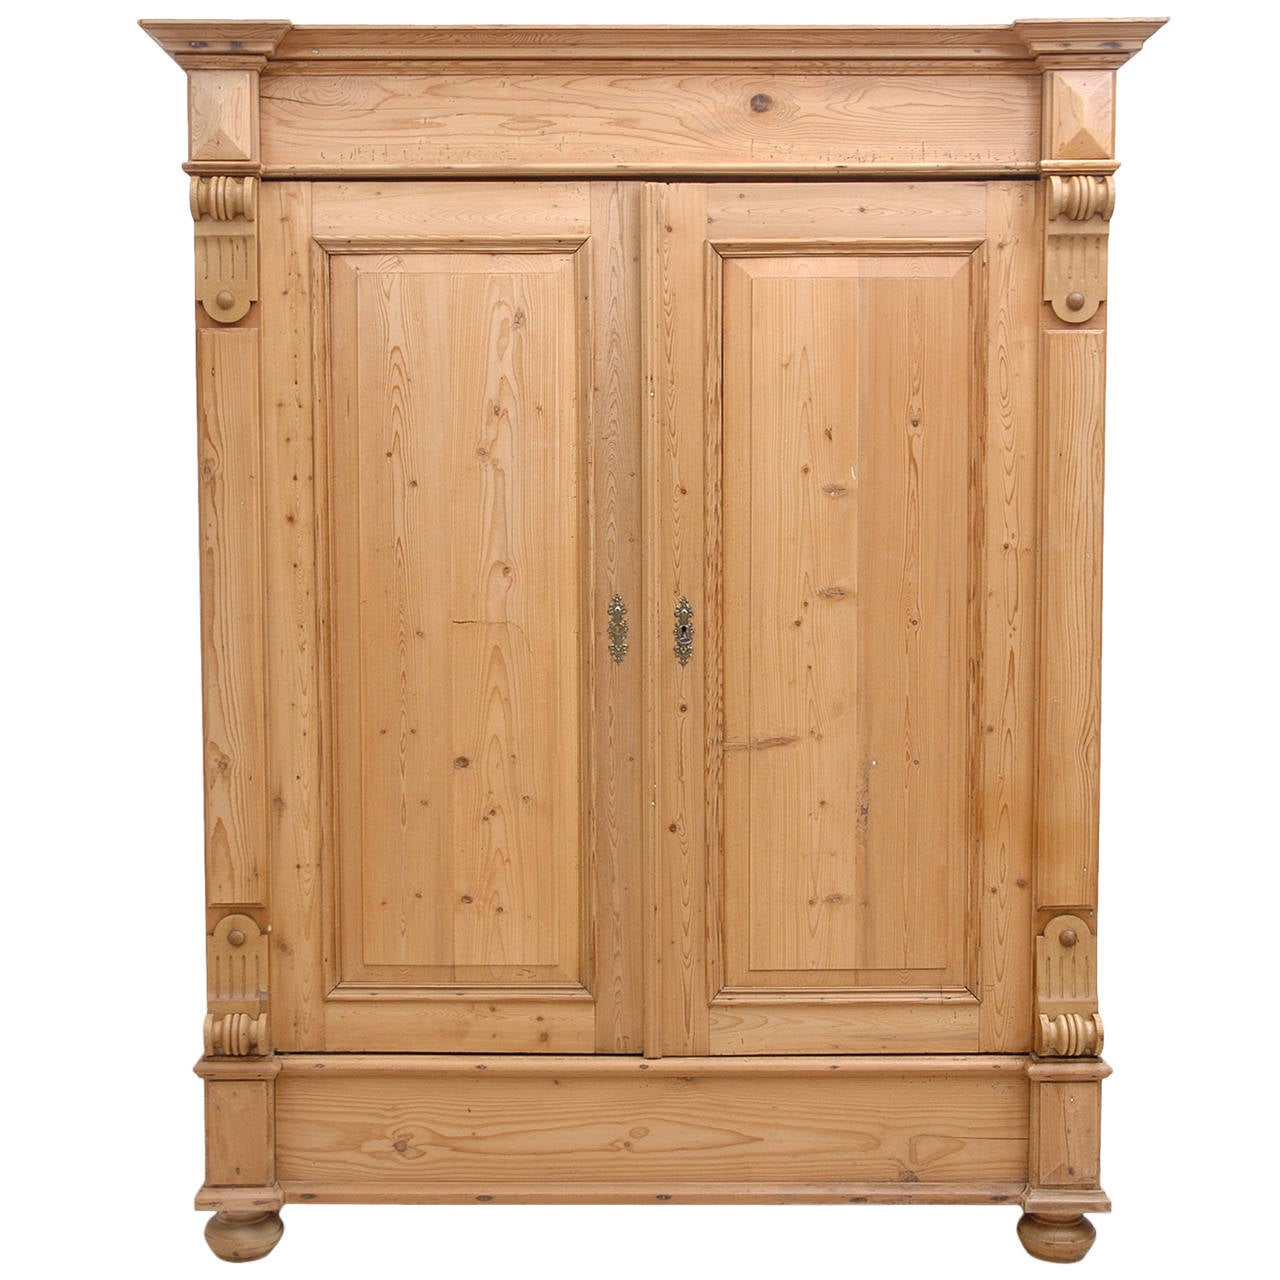 Antique Armoire in Pine from Europe, circa 1880 1 - Antique Armoire In Pine From Europe, Circa 1880 At 1stdibs